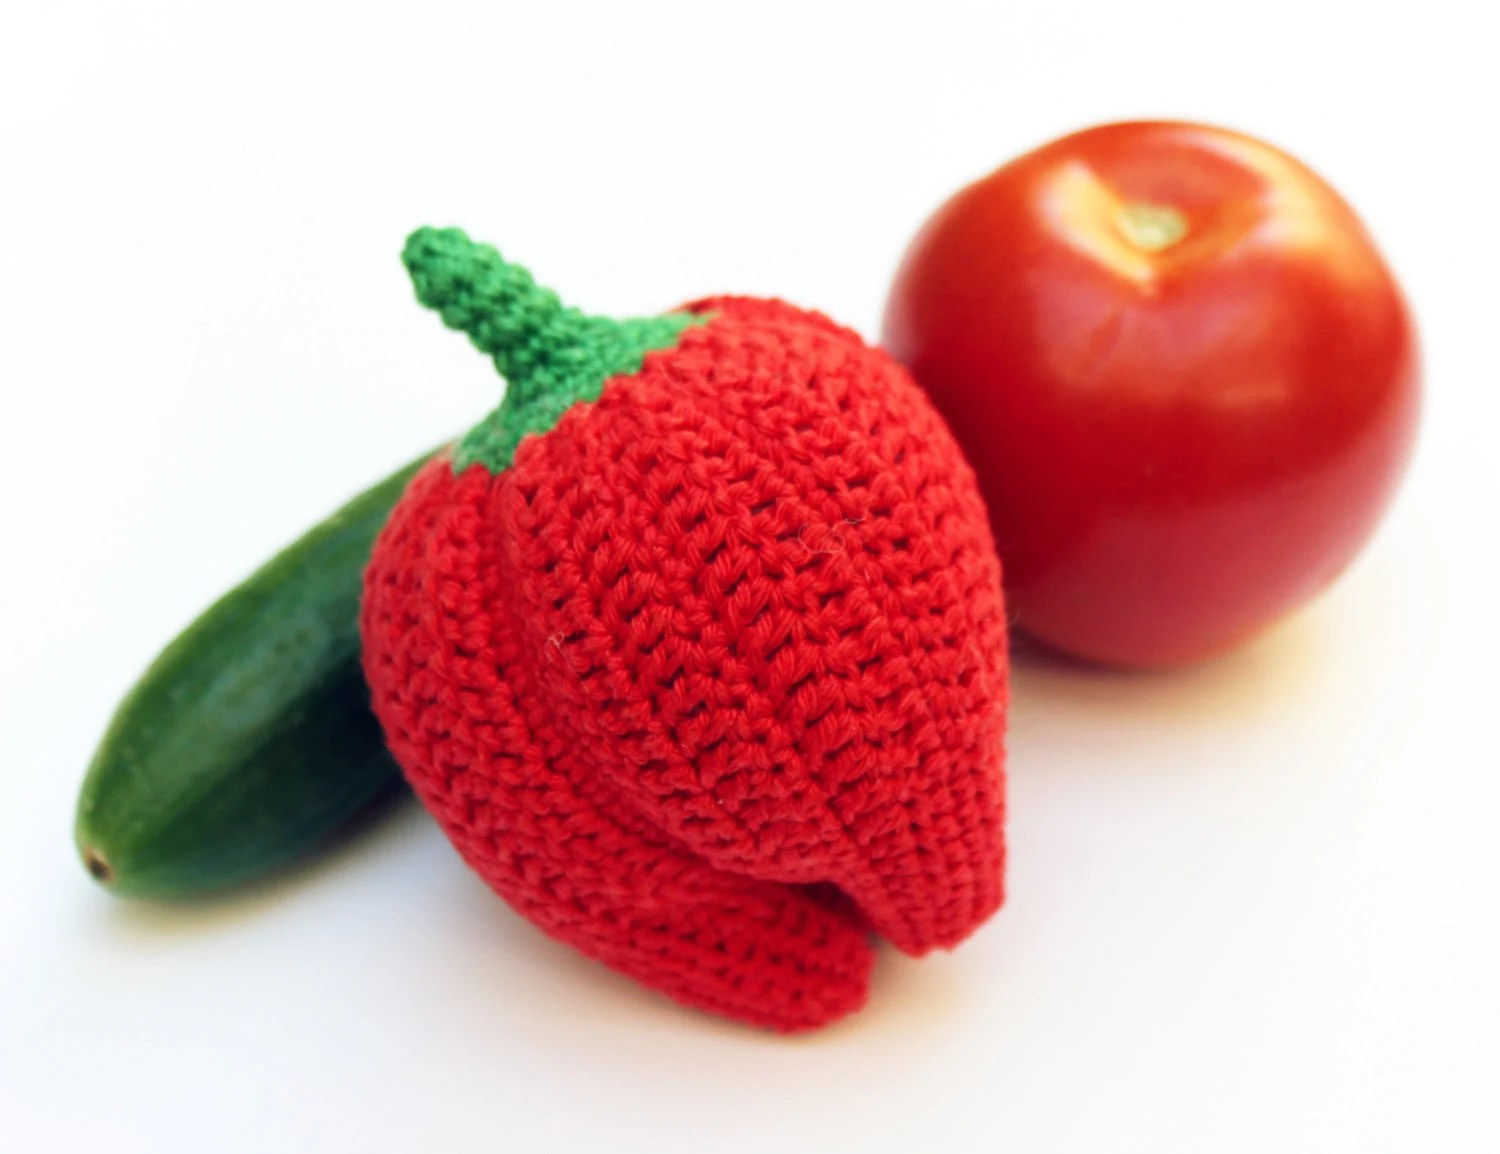 Crochet Toy - Crochet Red Peper - Cotton - for baby / girl / boy / kids - gift - CasaDeGato